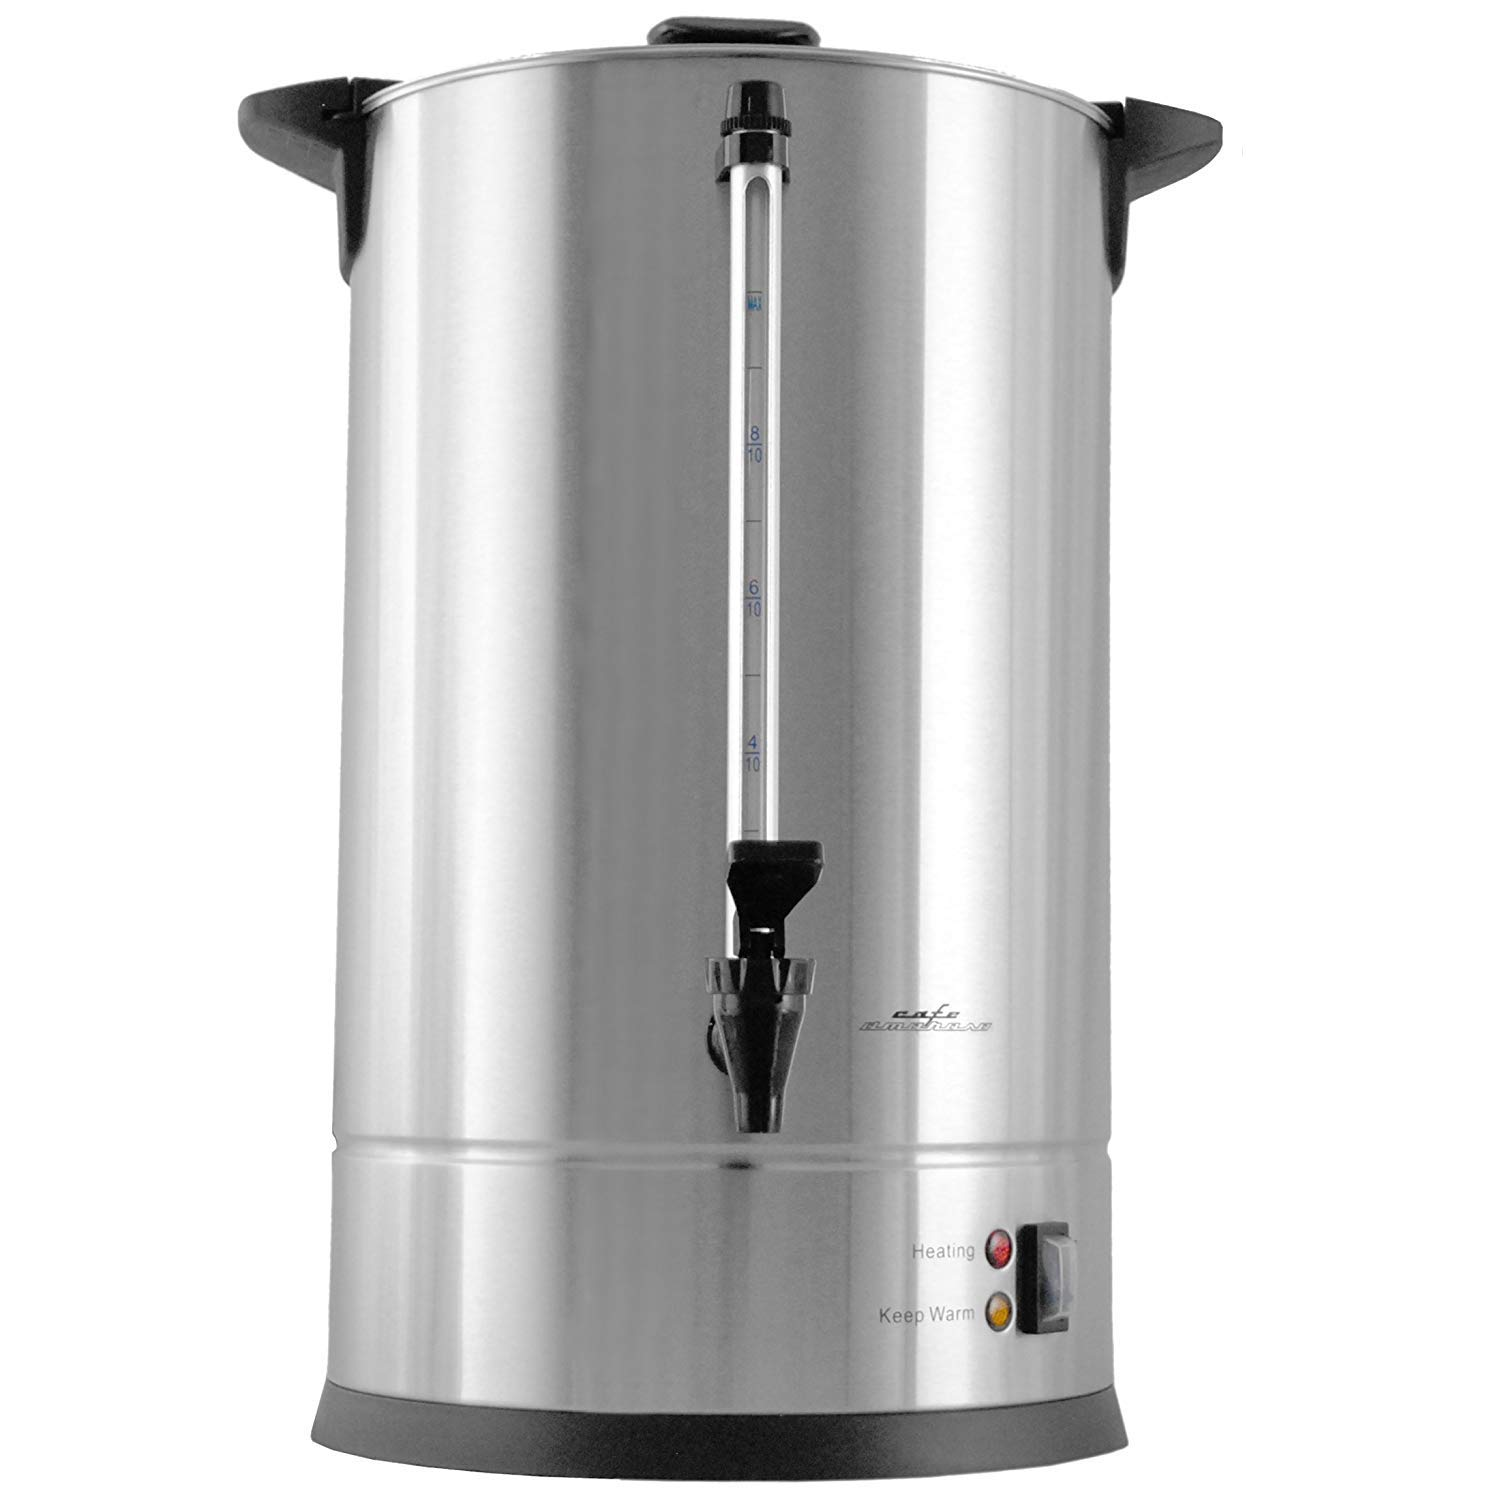 Cafe Amoroso 100 Cup Stainless Steel Coffee Maker Urn - Premium Commercial Double Wall Design - Perfect For Catering, Churches, Banquets, Restaurants - 1 Year Warranty